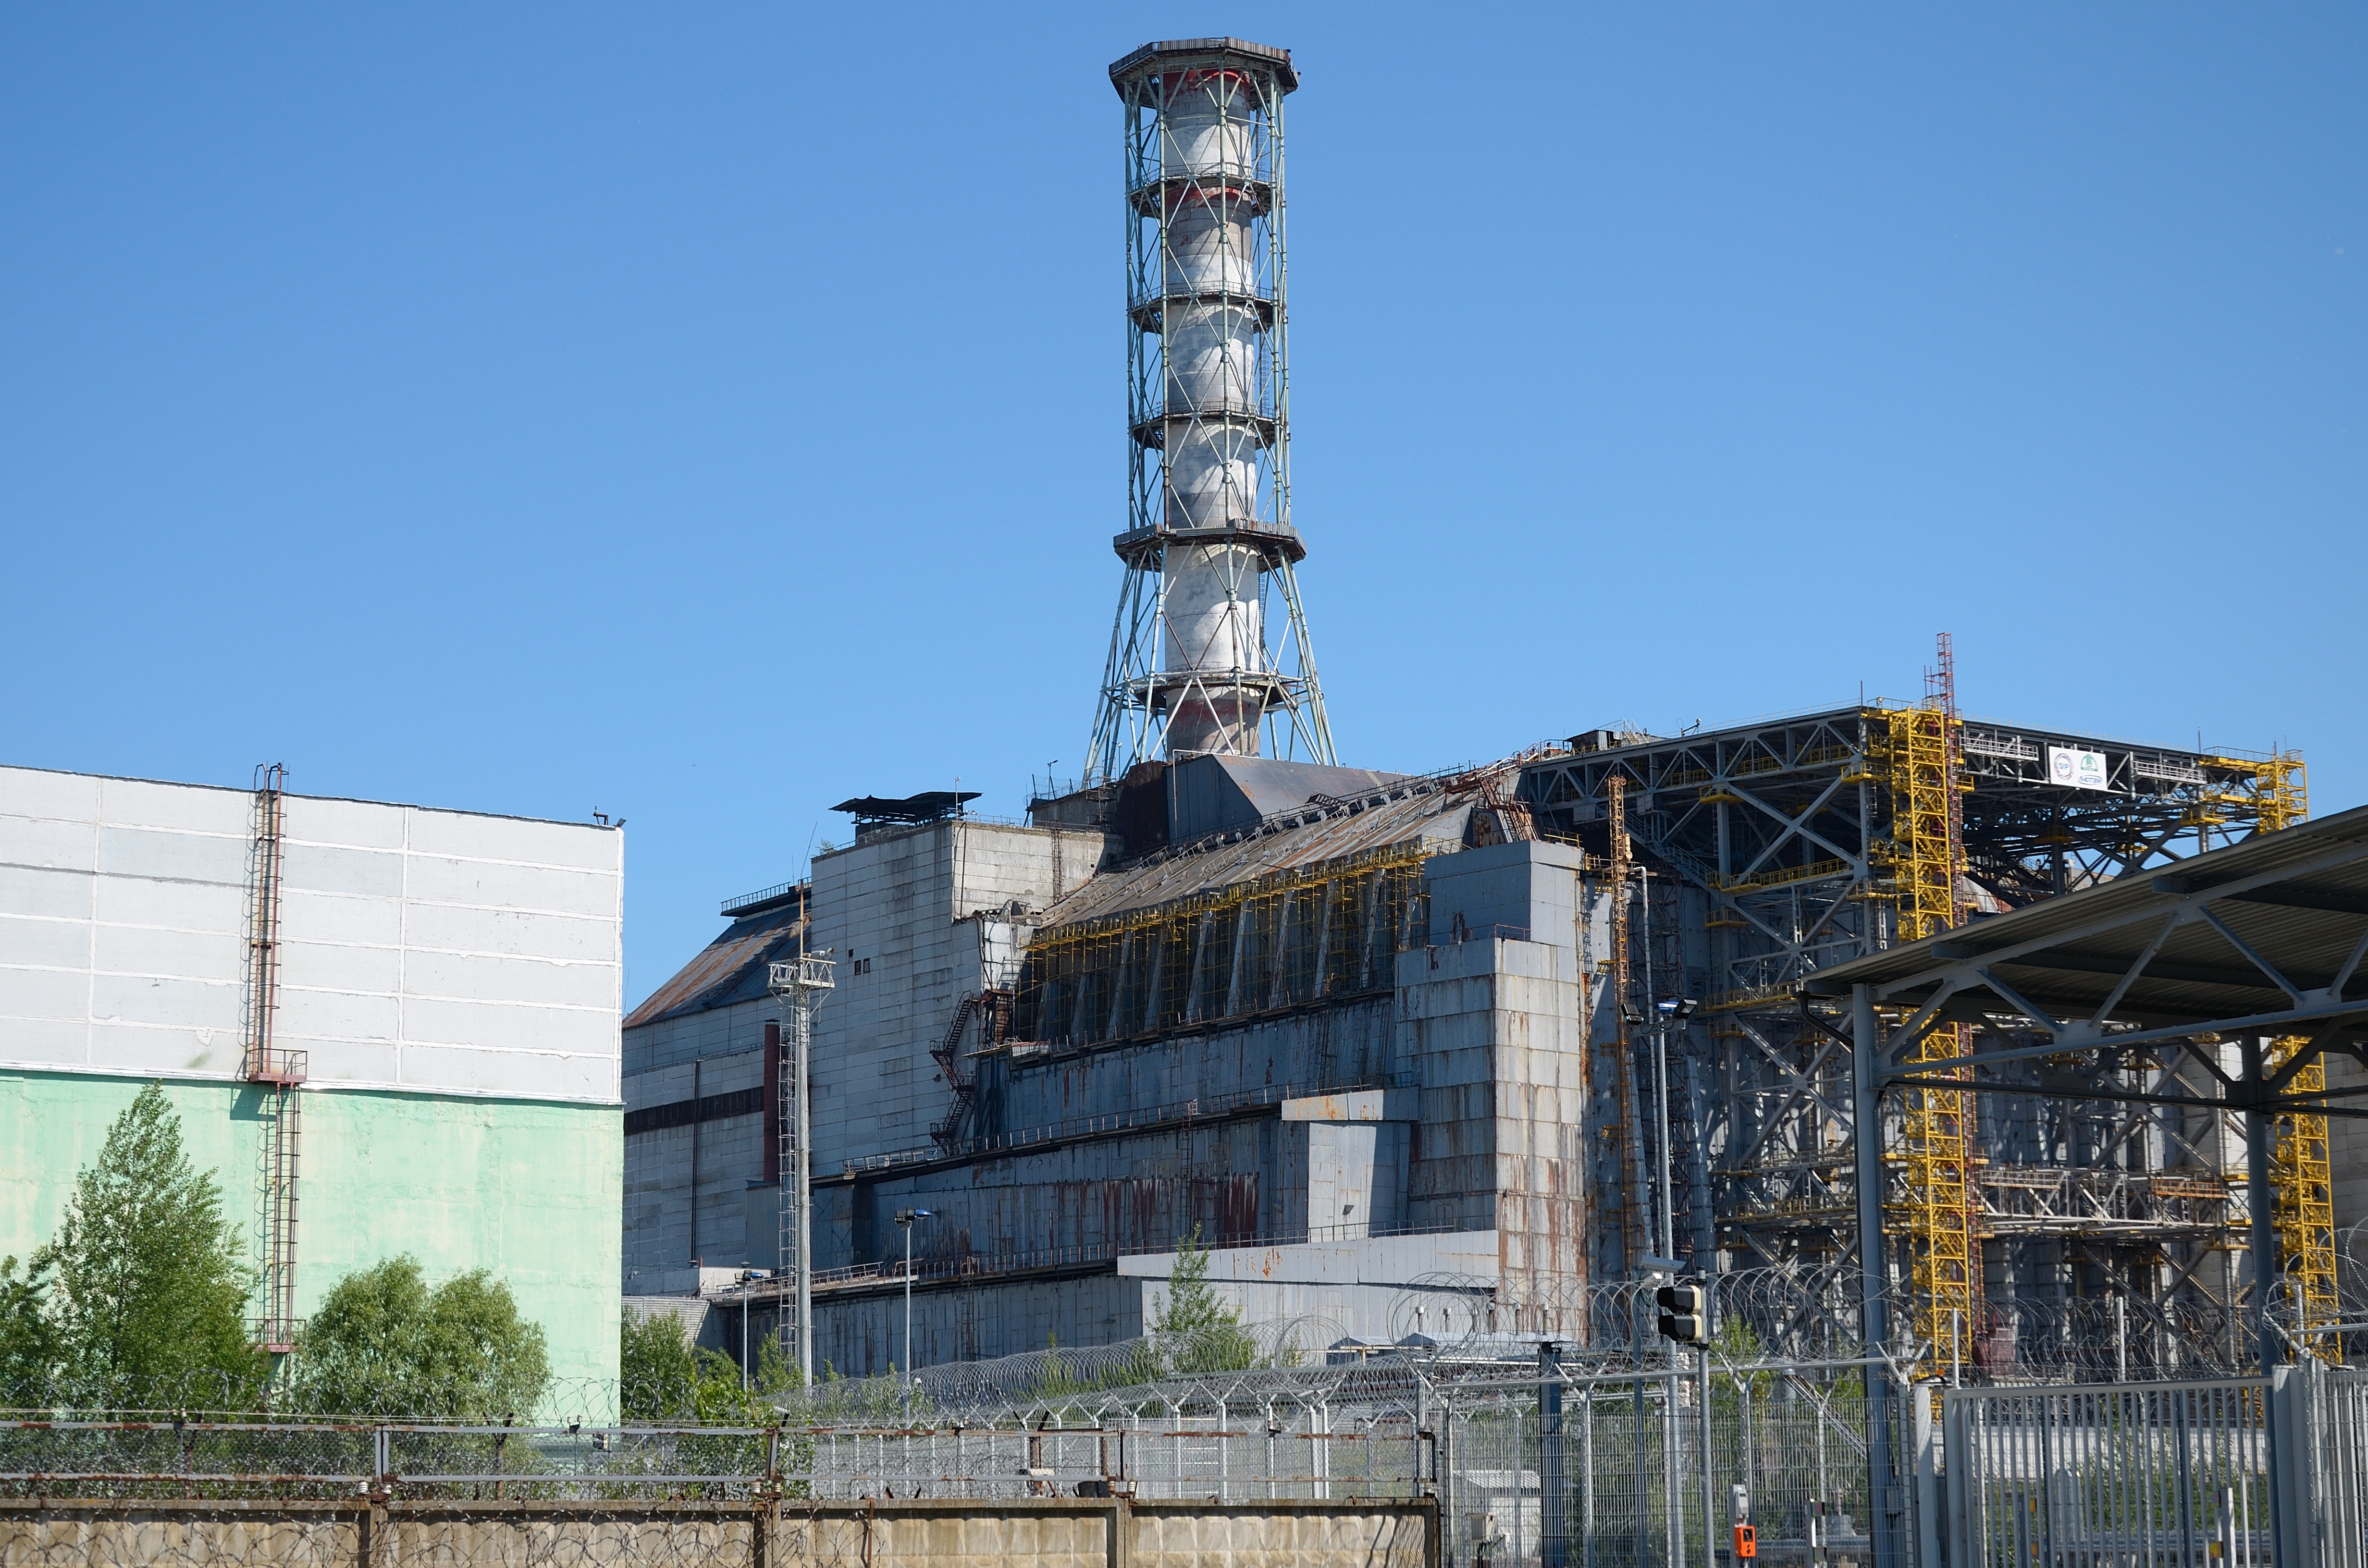 Chernobyl Nuclear Power Plant Wikipedia - Us nuclear plant meltdown map